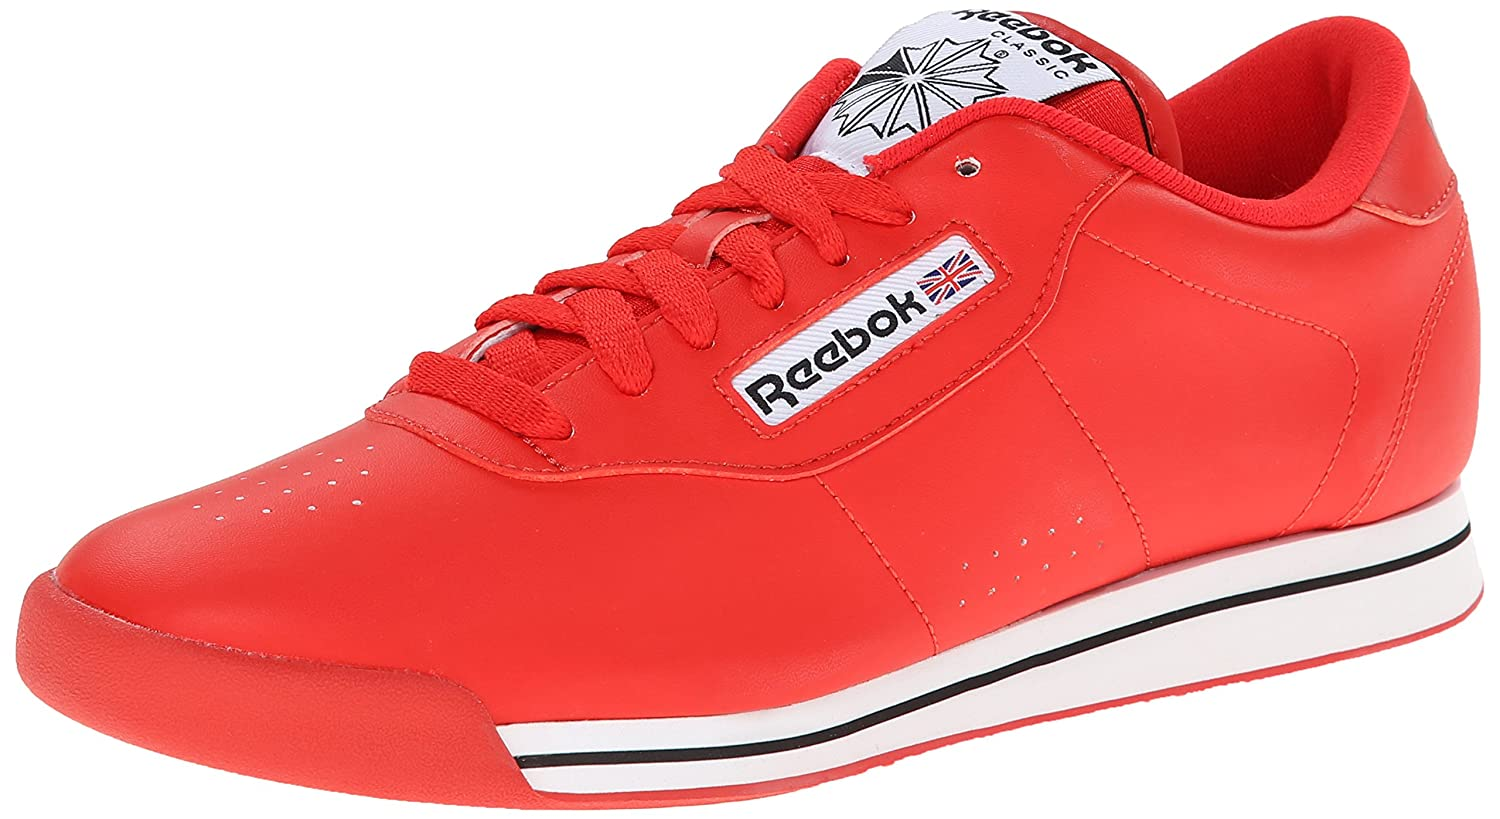 Reebok Damen Princess Laufschuhe, Weiszlig;  41 EU|Techy Red/White/Black